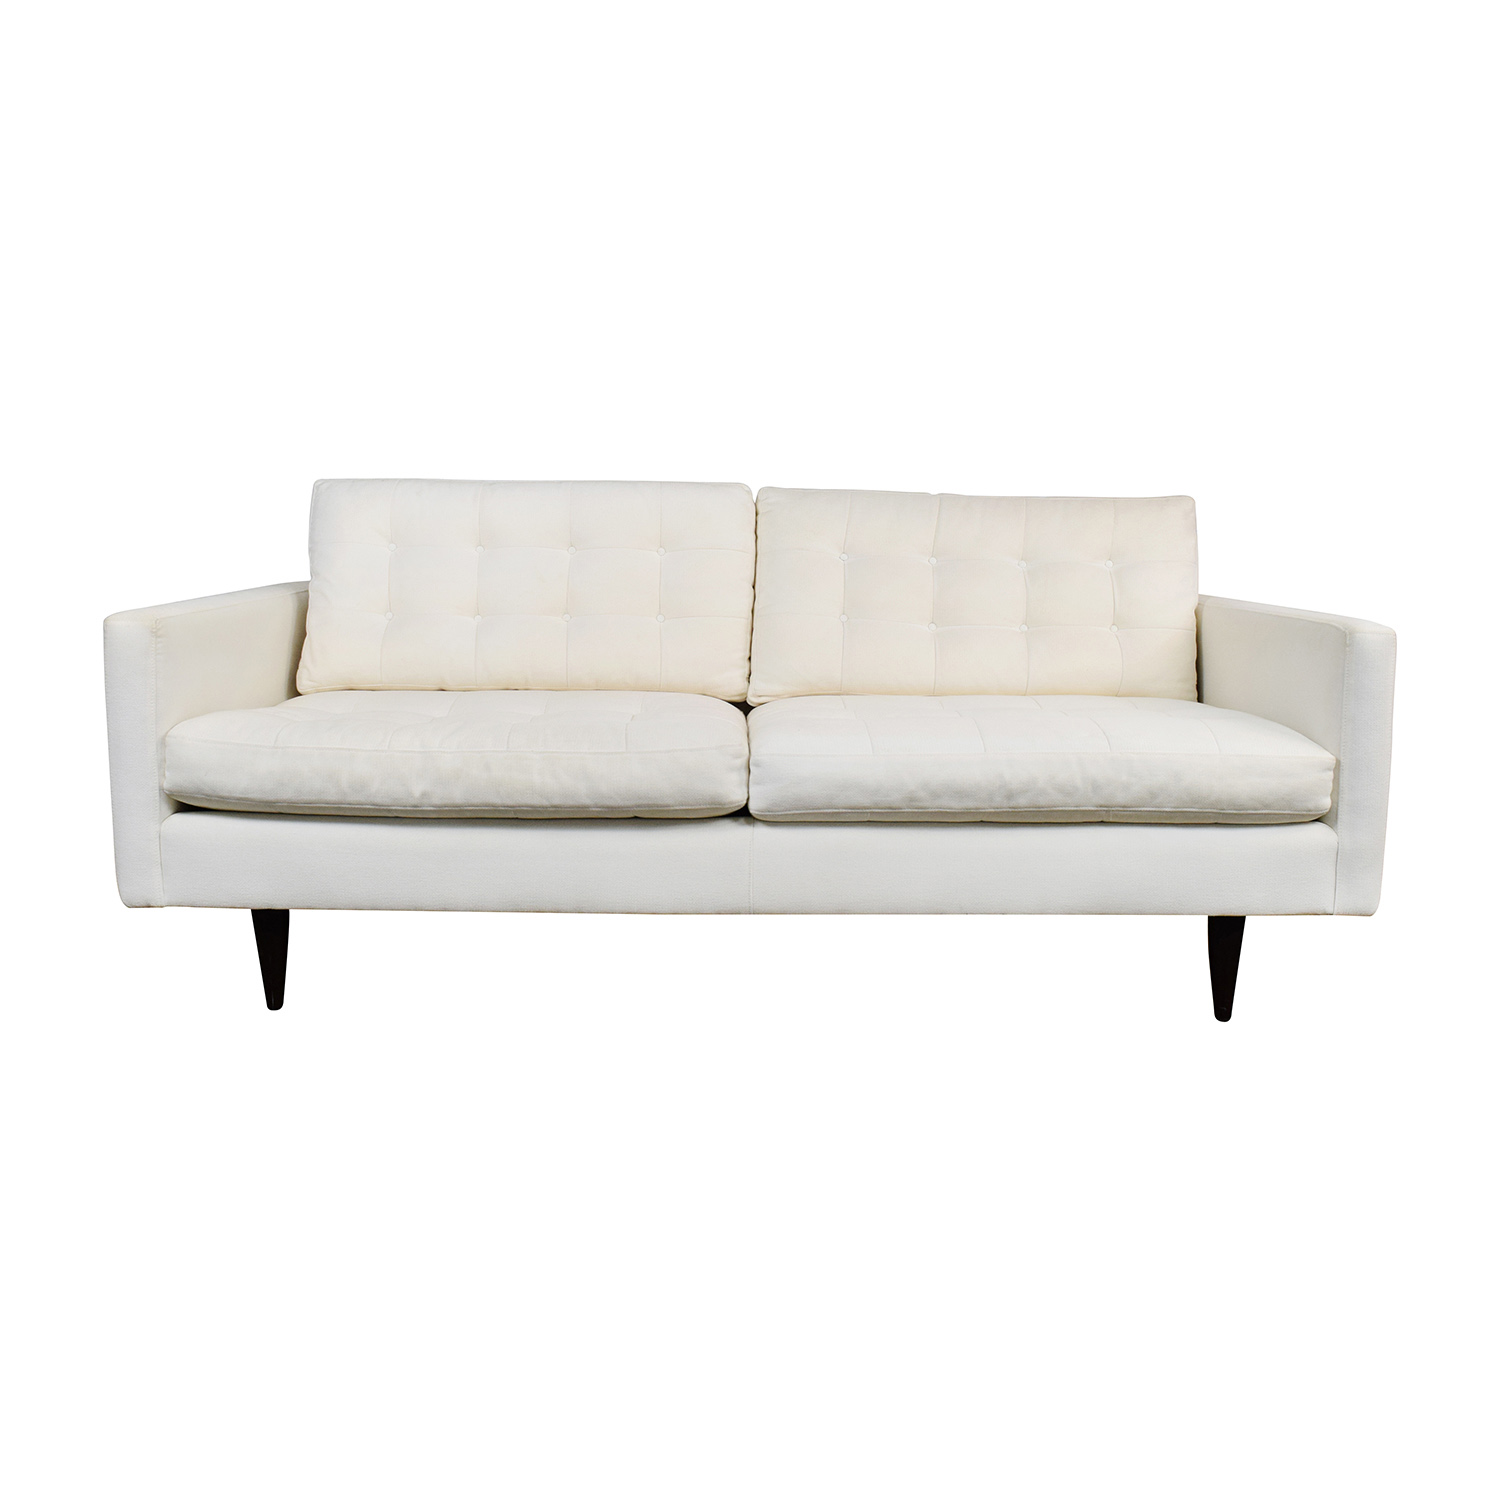 73 Off Crate And Barrel Crate Barrel White Twill Tufted Sofa Sofas